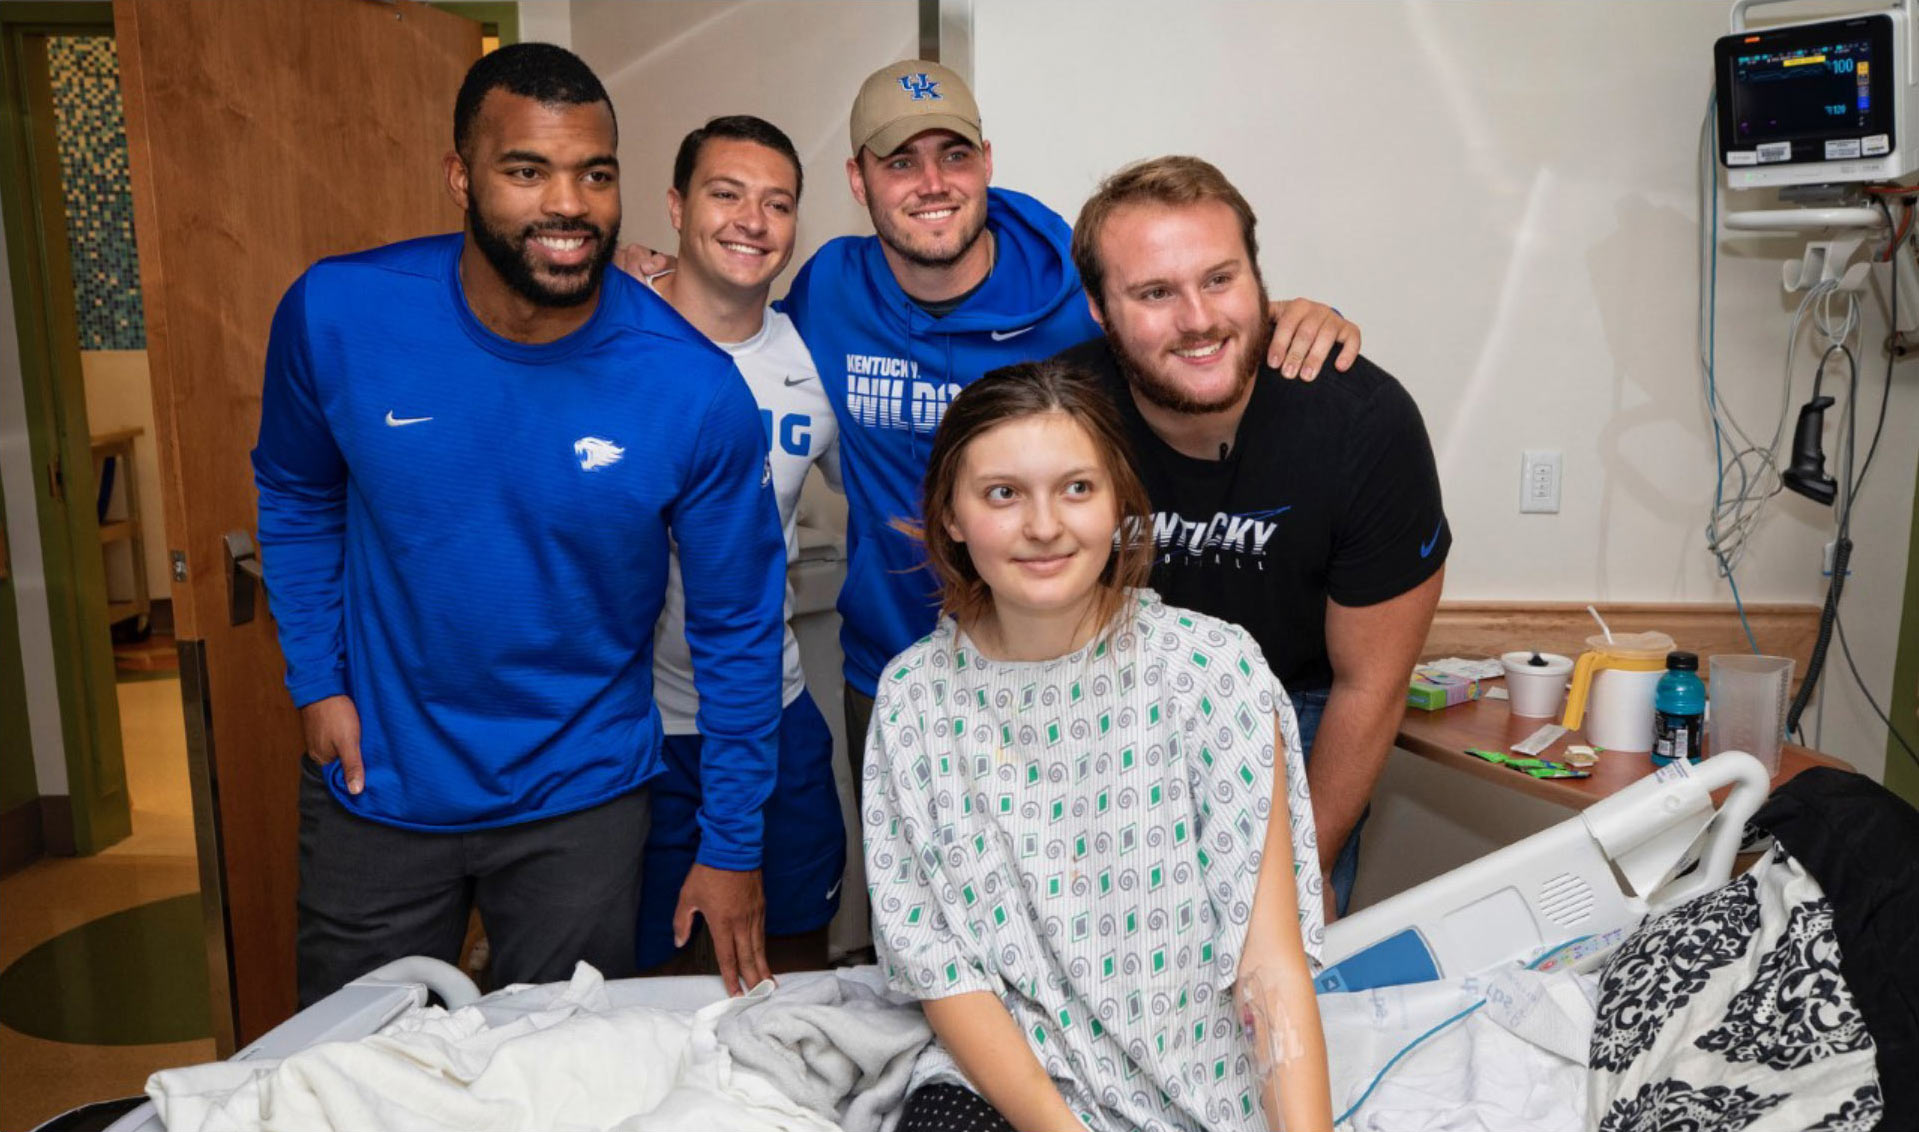 Courtney Love, wearing a blue shirt, and three current football players wearing Kentucky gear, pose with a Kentucky Children's Hospital patient. The patient, a young girl, is sitting in her bed and wearing a hospital gown.